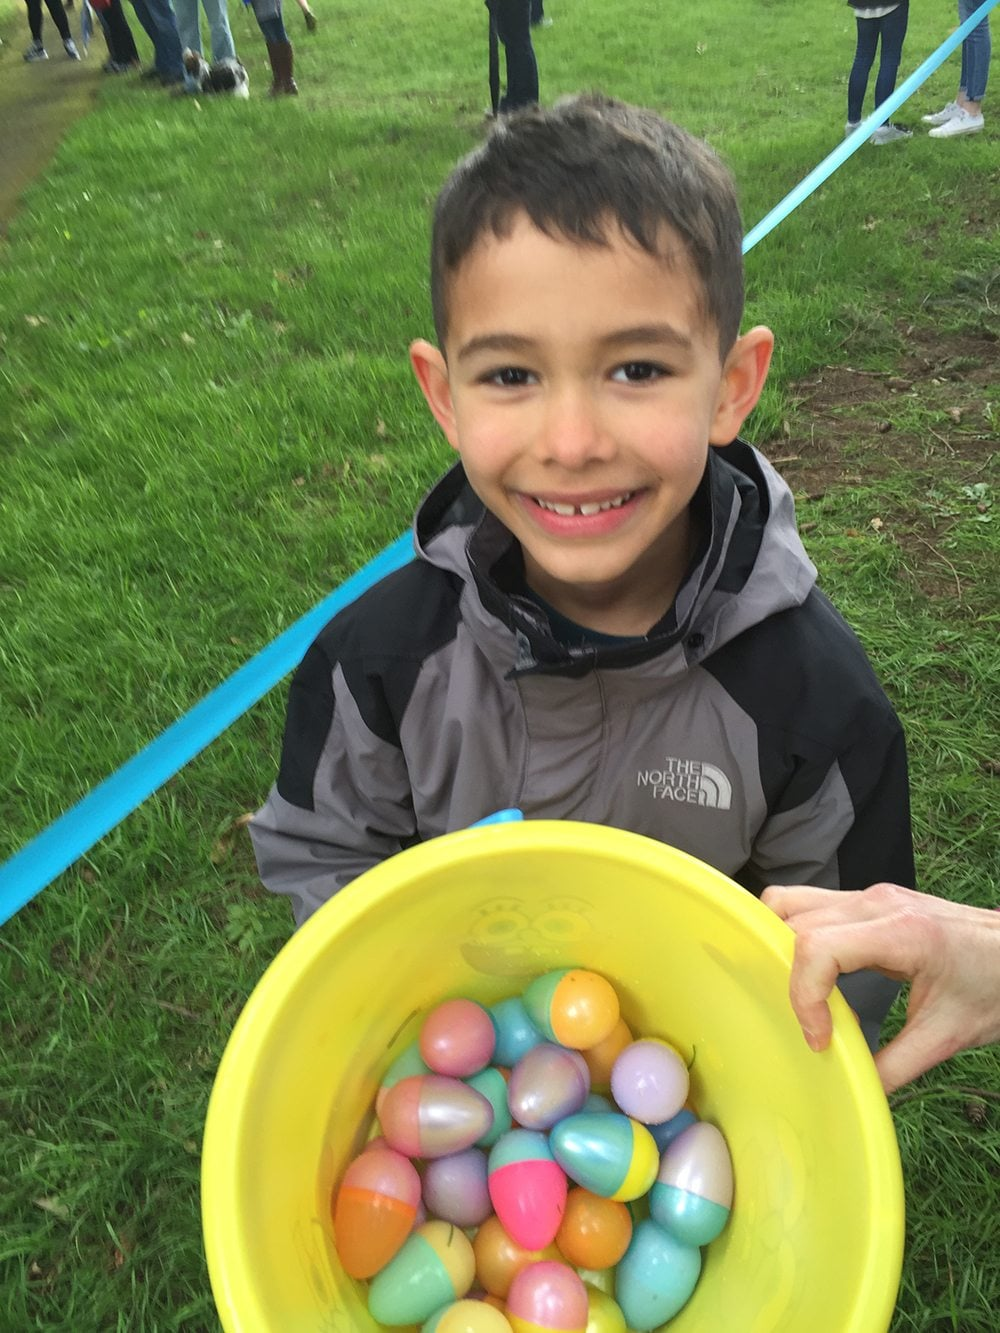 """Brody Olson, 8, of West Linn, Ore., shows off the roughly two dozen plastic Easter eggs he collected Sunday afternoon at an Easter egg hunt at Crown Park in Camas. As for his strategy in this year's hunt: """"I just went random,"""" he said. (Cindi Olson)"""